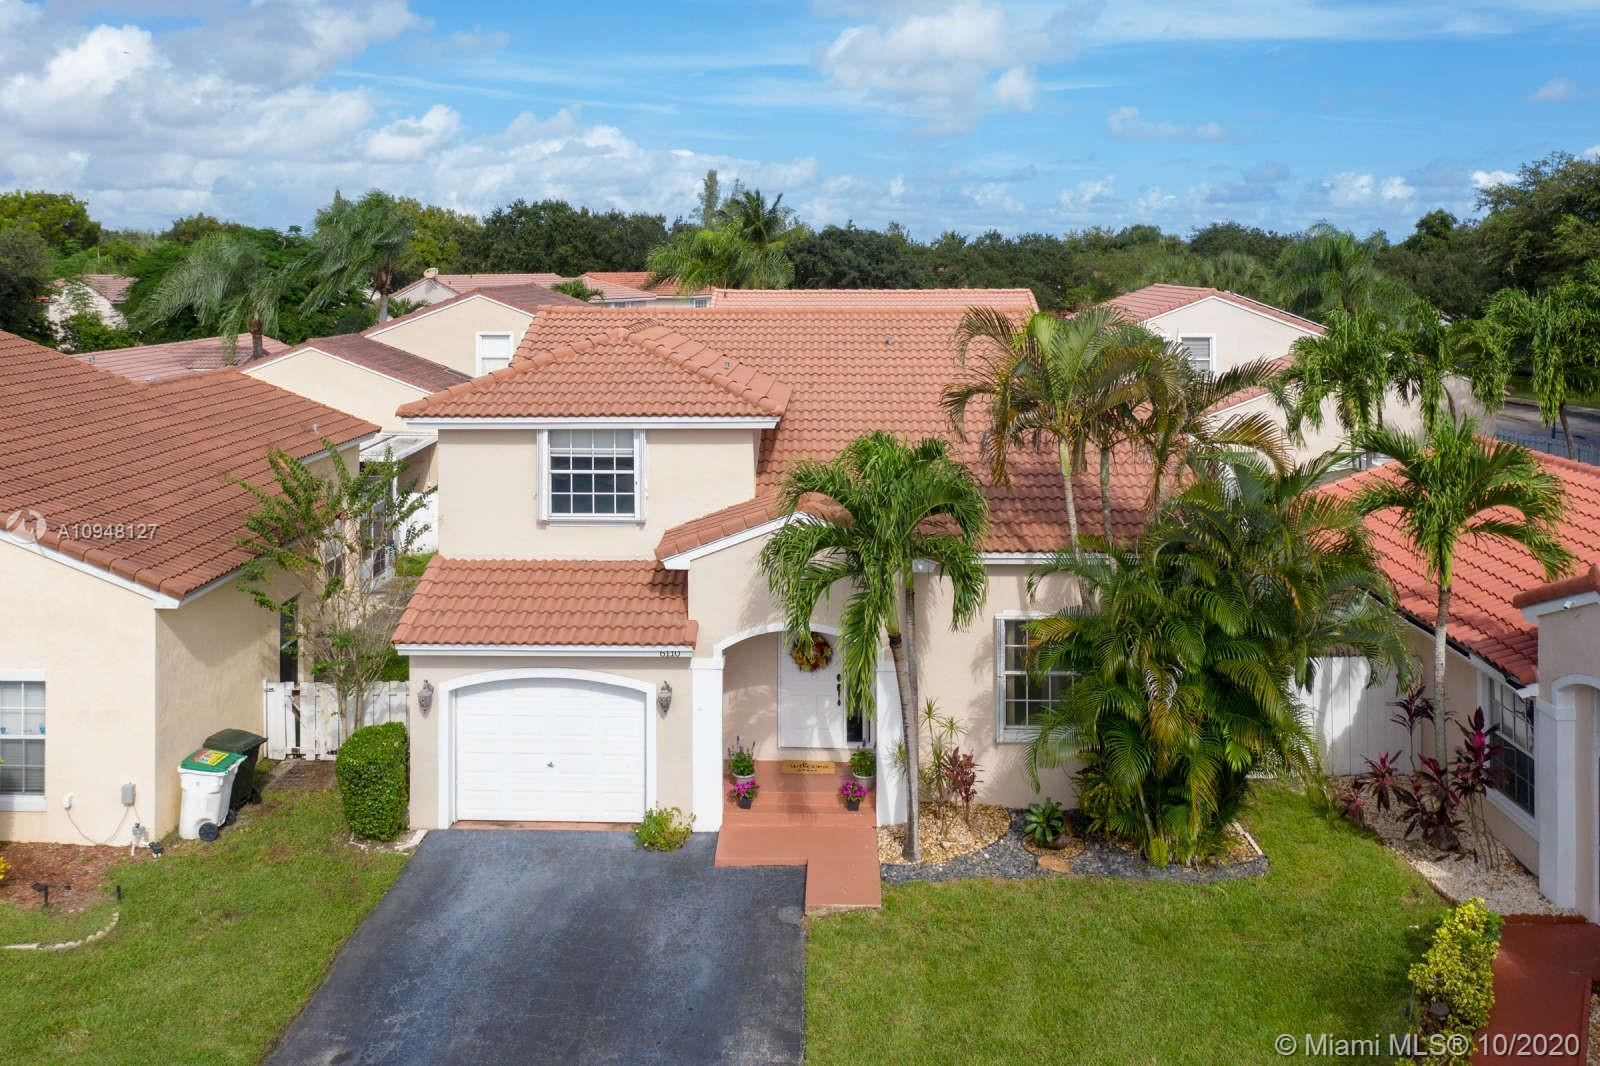 6110 NW 43rd Ave, Coconut Creek, FL 33073 - #: A10948127